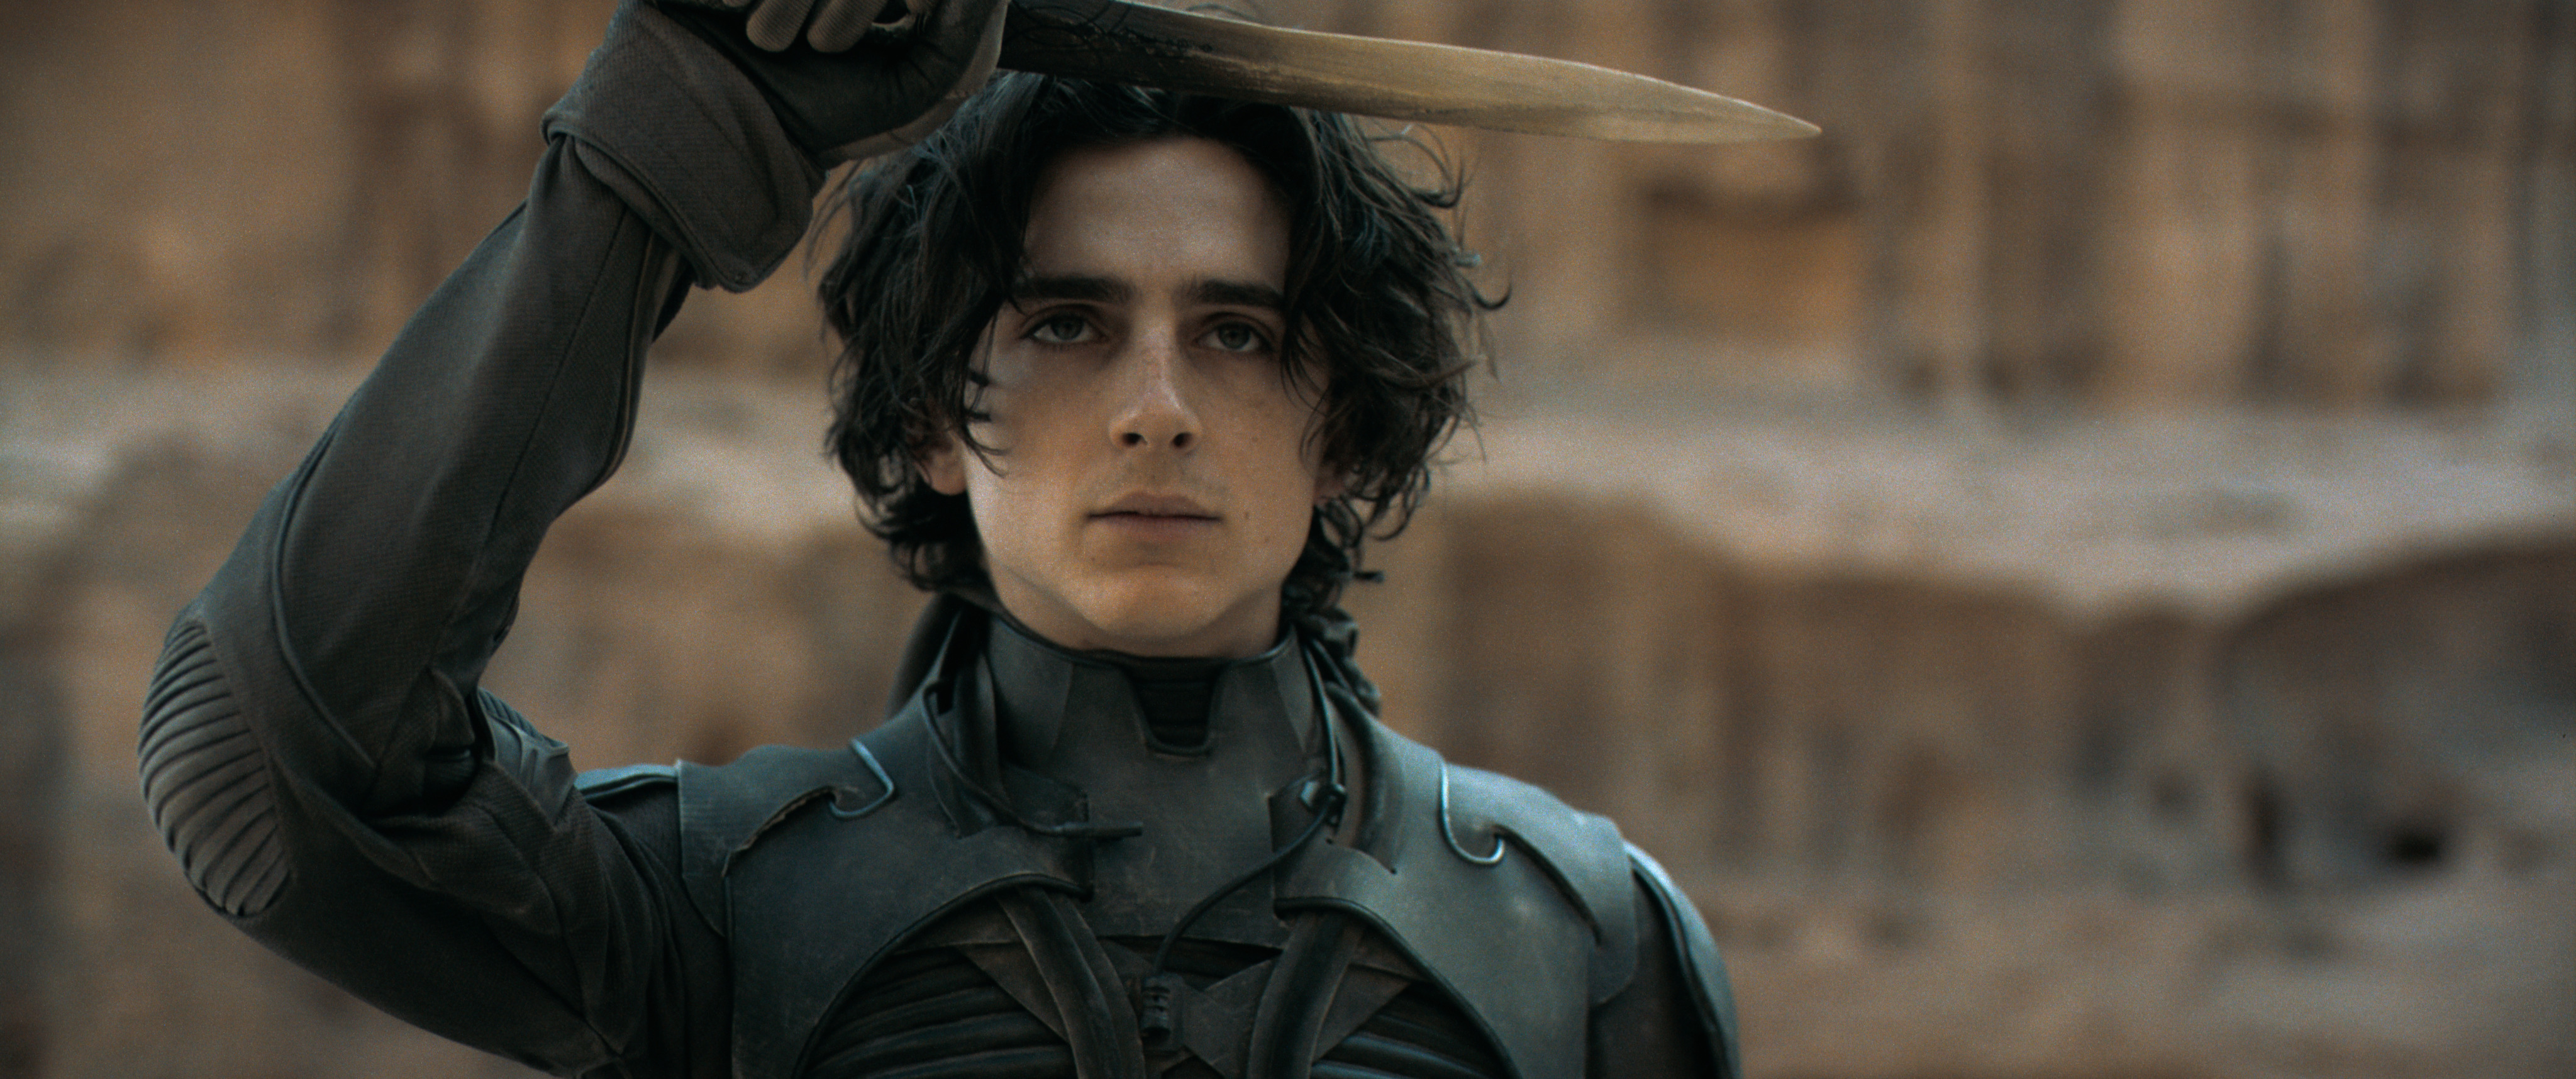 Timothée Chalamet salutes with a crysknife in Dune.